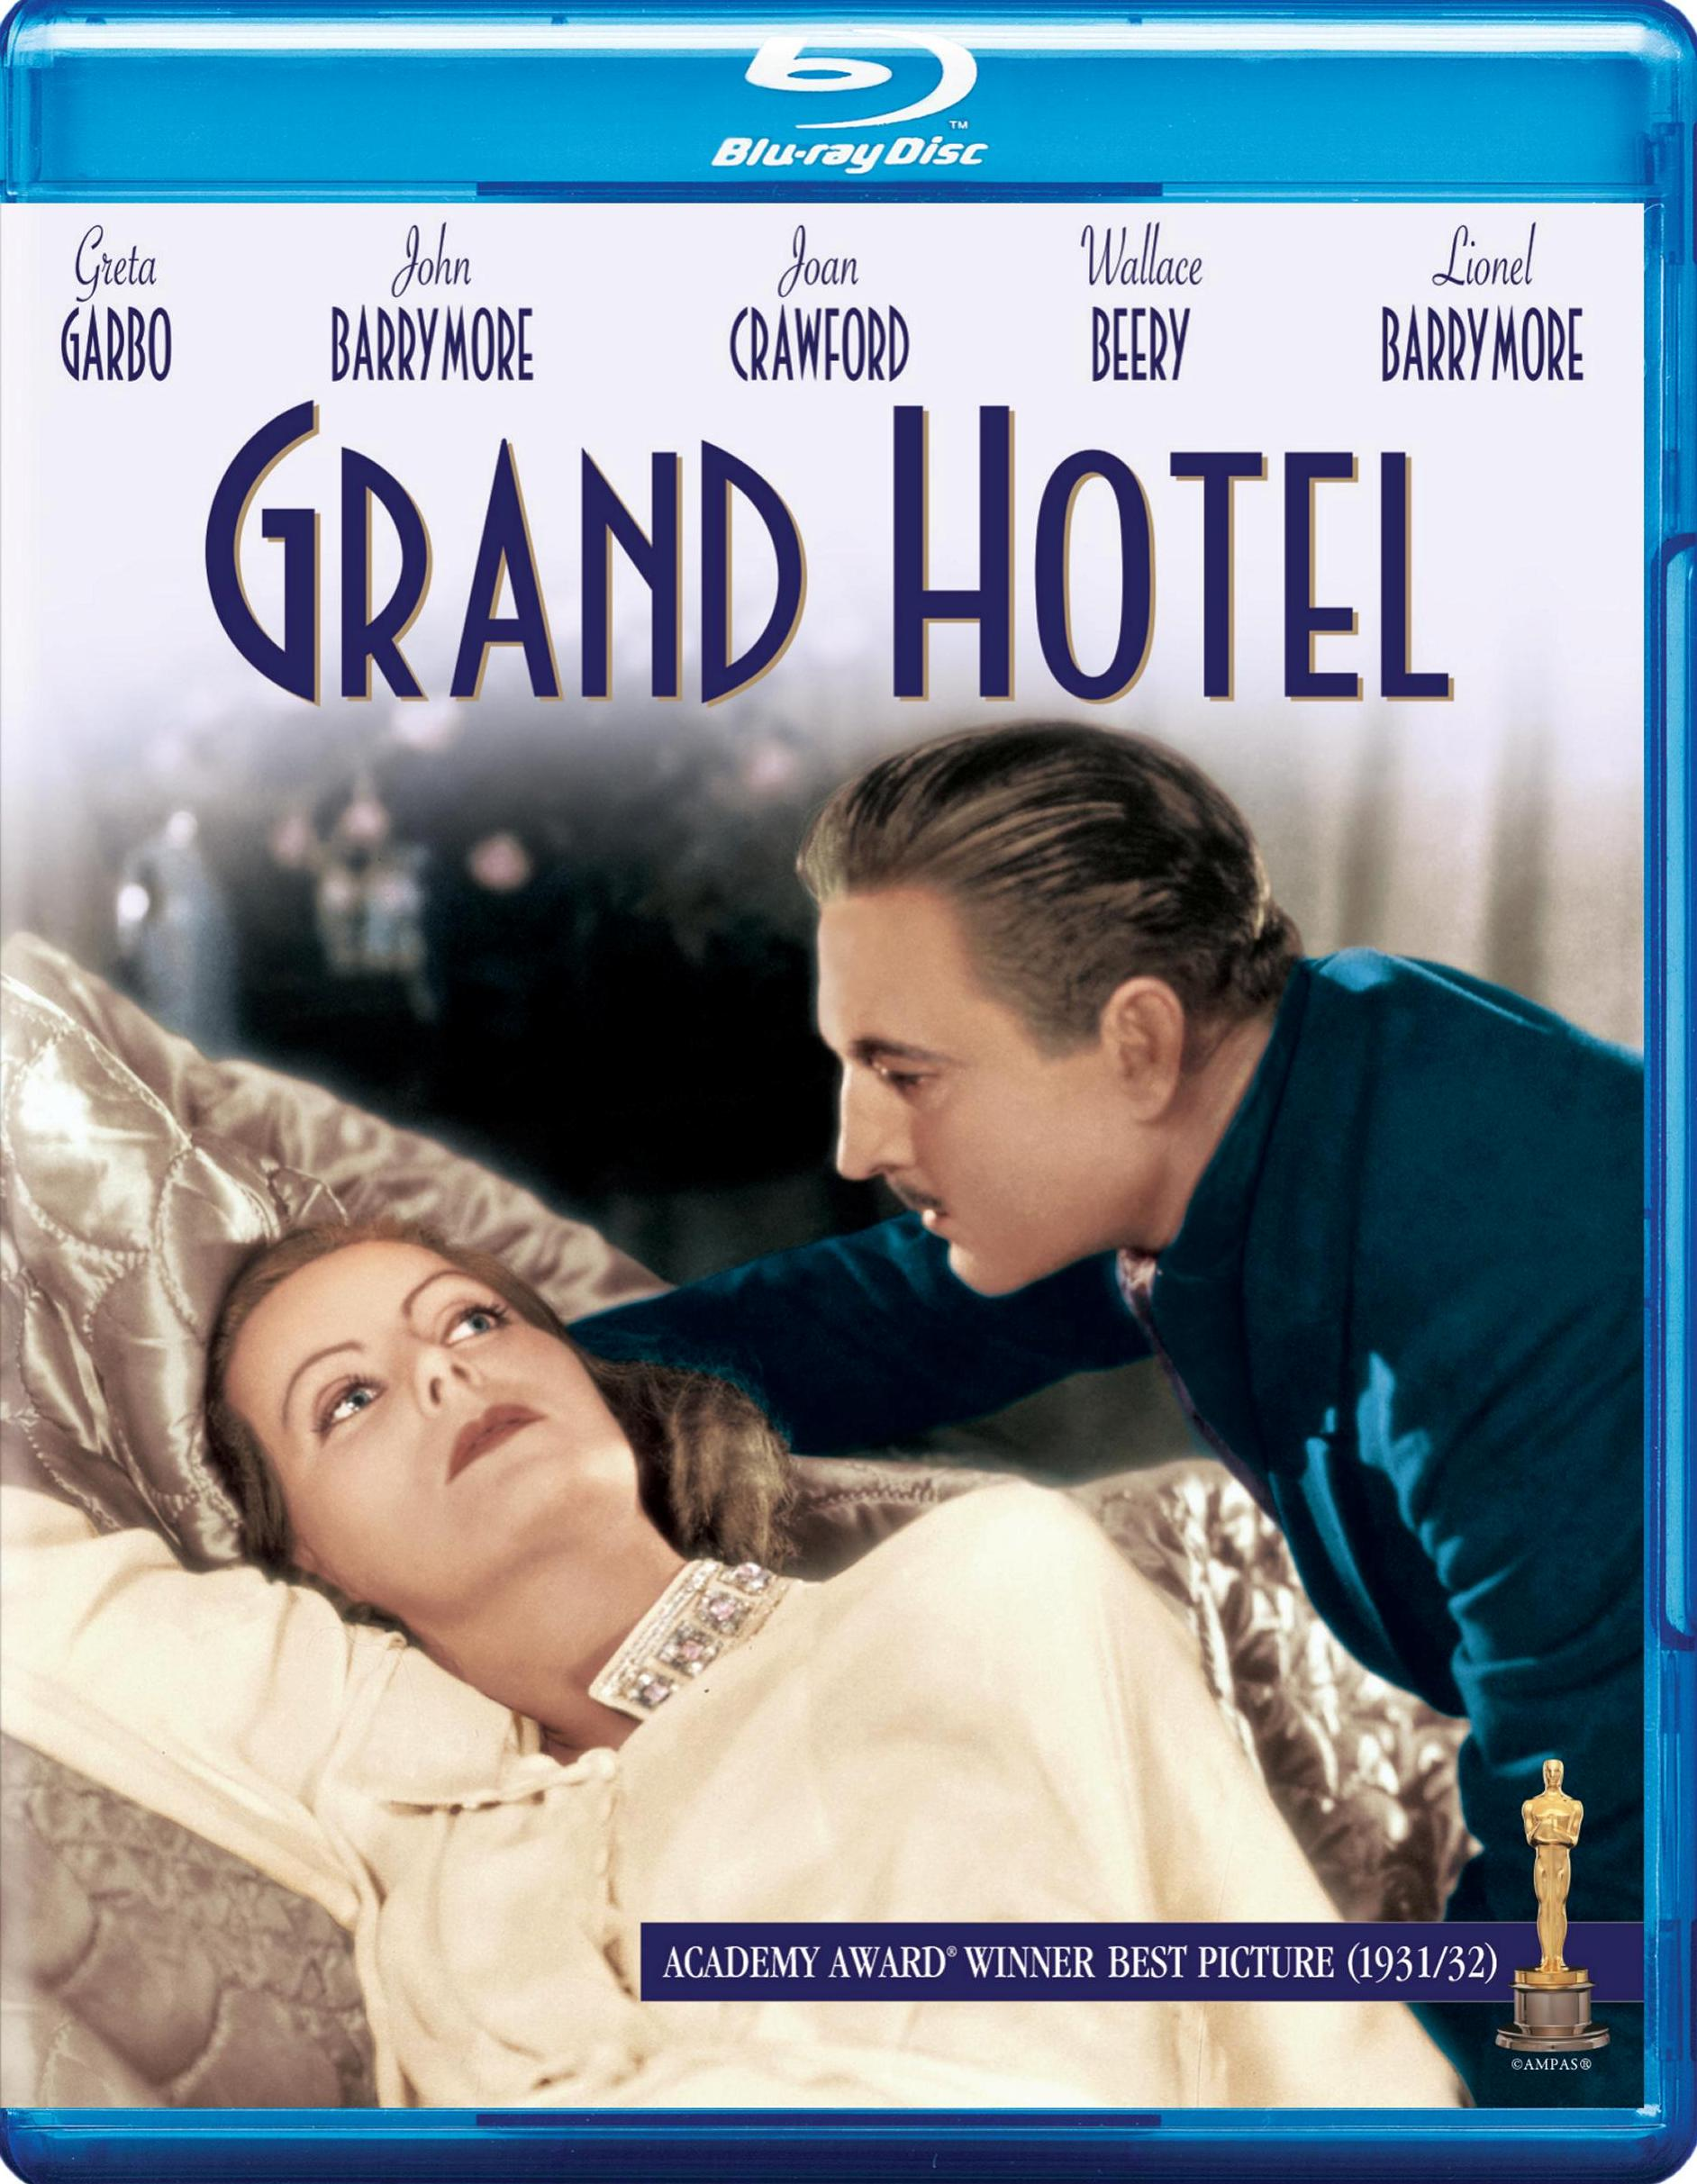 Blu-ray Review: Edward Goulding's Grand Hotel on Warner Home Video